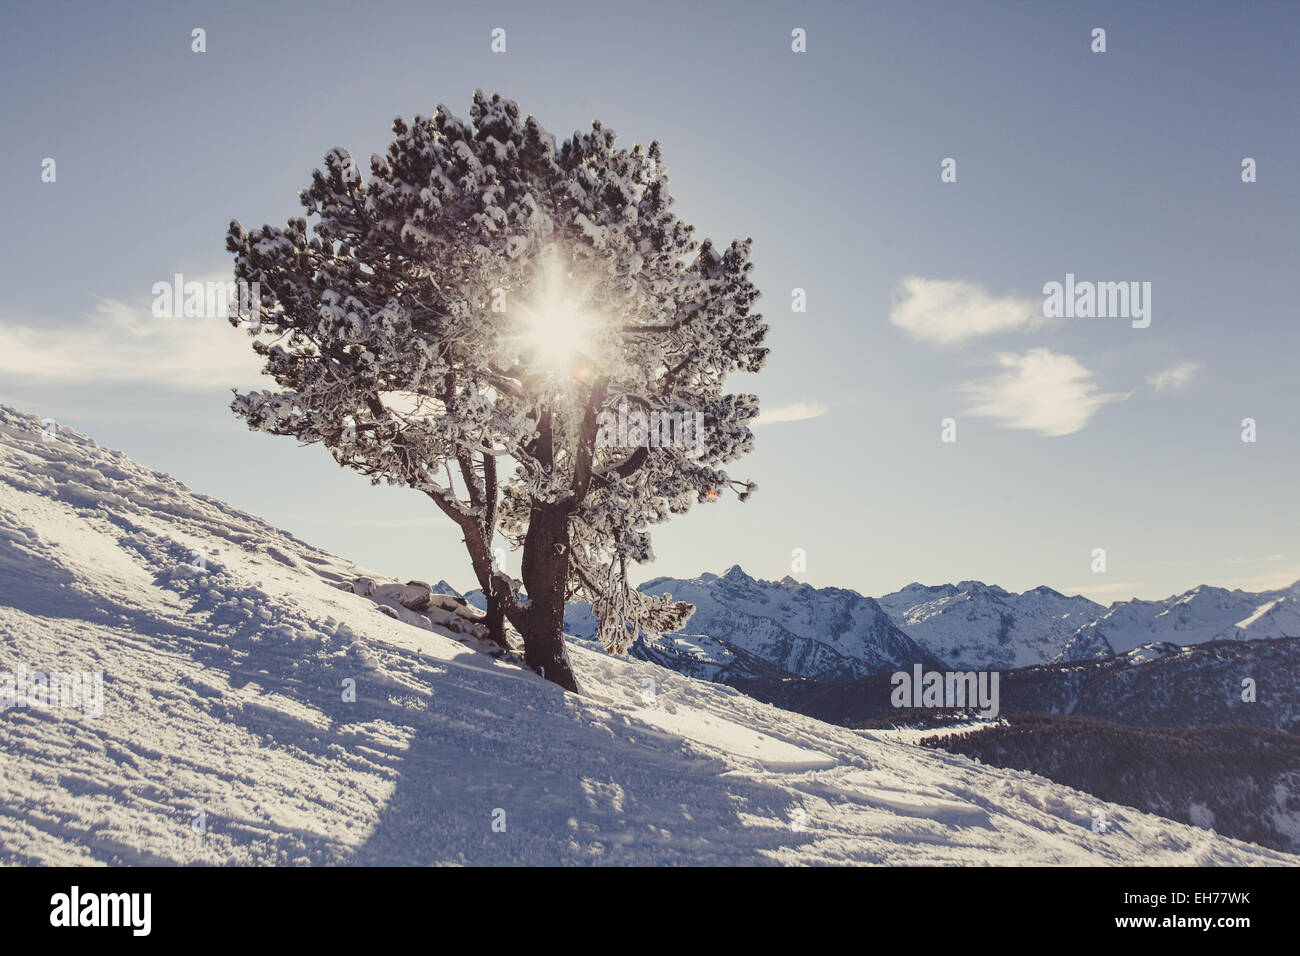 Pyrenees - Stock Image